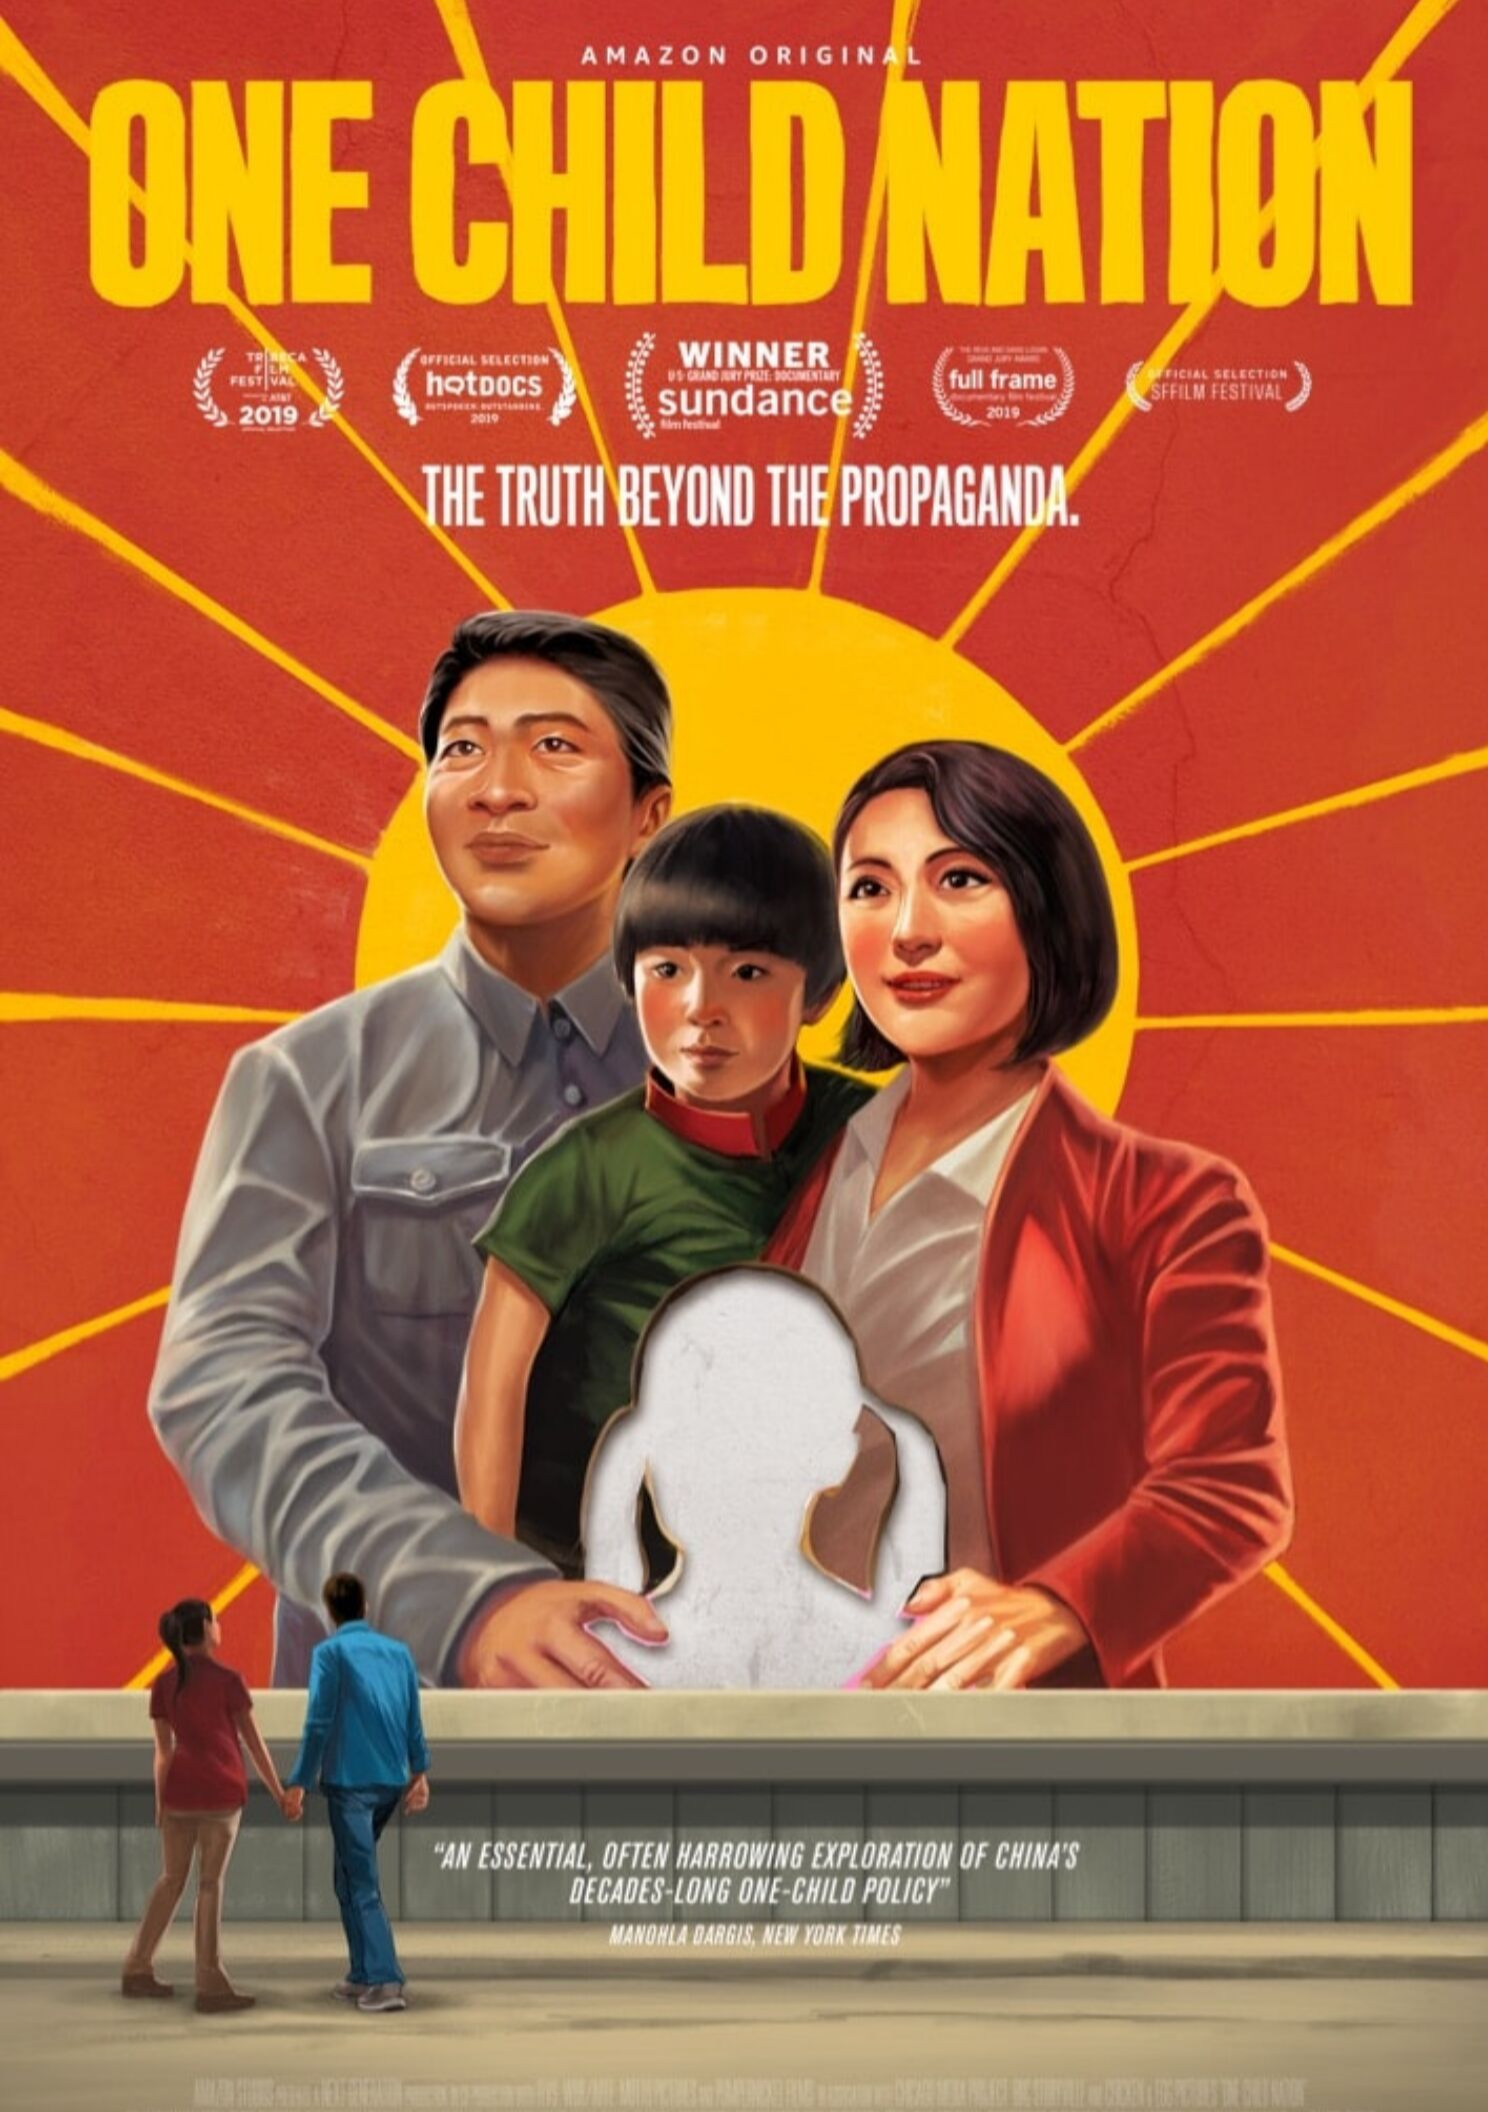 one child nation - OVERVIEW: After becoming a mother, a filmmaker uncovers the untold history of China's one-child policy and the generations of parents and children forever shaped by this social experiment.FILMMAKERS: A film by Nanfu Wang and Jialing Zhang. Wang's credits include Hooligan Sparrow, which premiered at the Sundance Film Festival, and I Am Another You, which premiered at SXSW. Zhang's credits include Complicit.WINNER: Sundance Film FestivalPRESS: The New Yorker, The New York Times, NPR, The Atlantic, The Washington Post